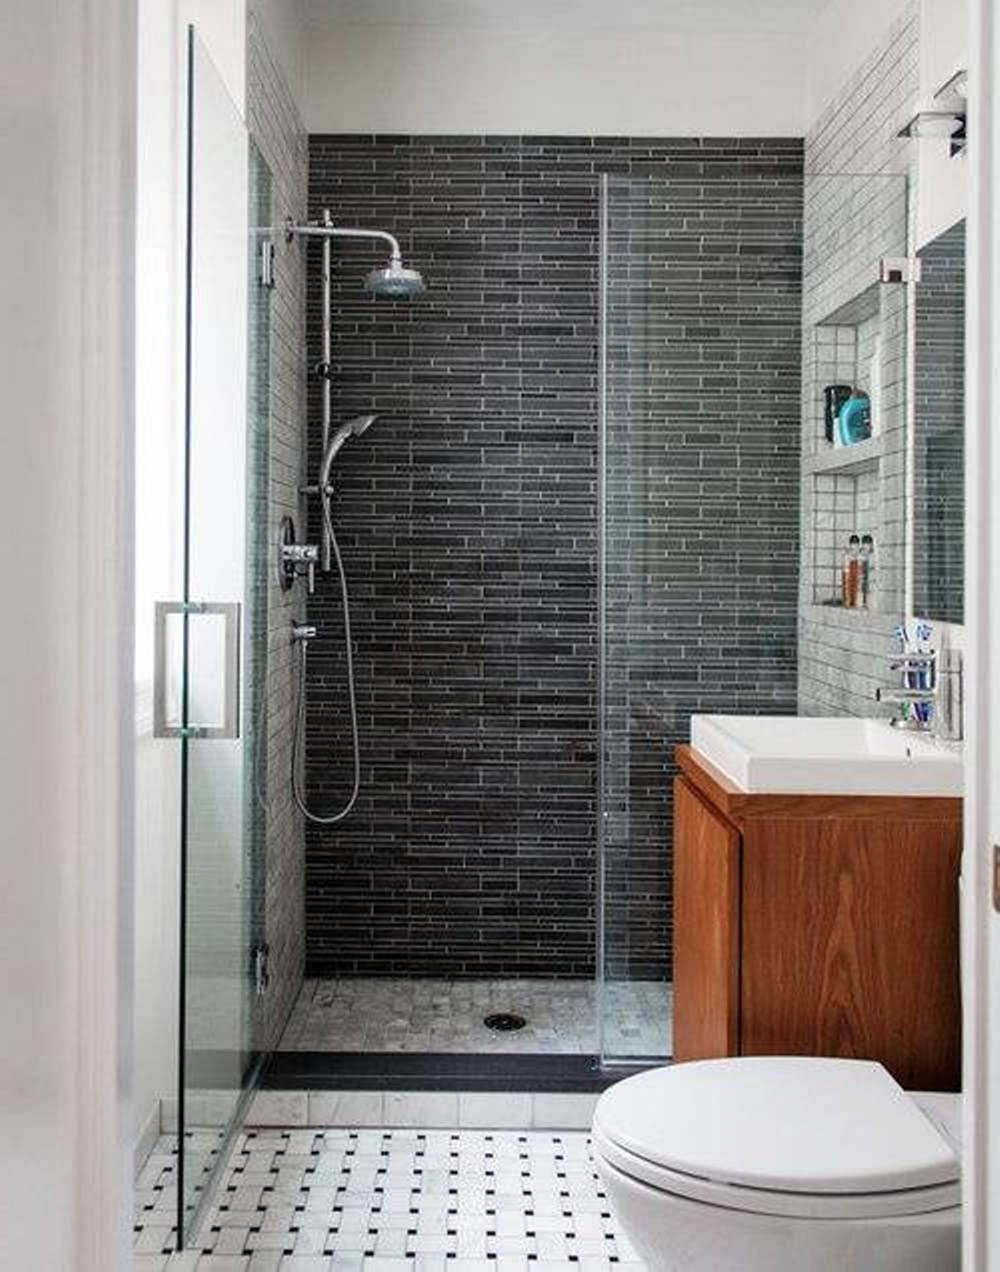 How-to-Remodel-a-Smaller-Bathroom-to-a-Luxurious-Haven-2 How to Remodel a Smaller Bathroom to a Luxurious Haven